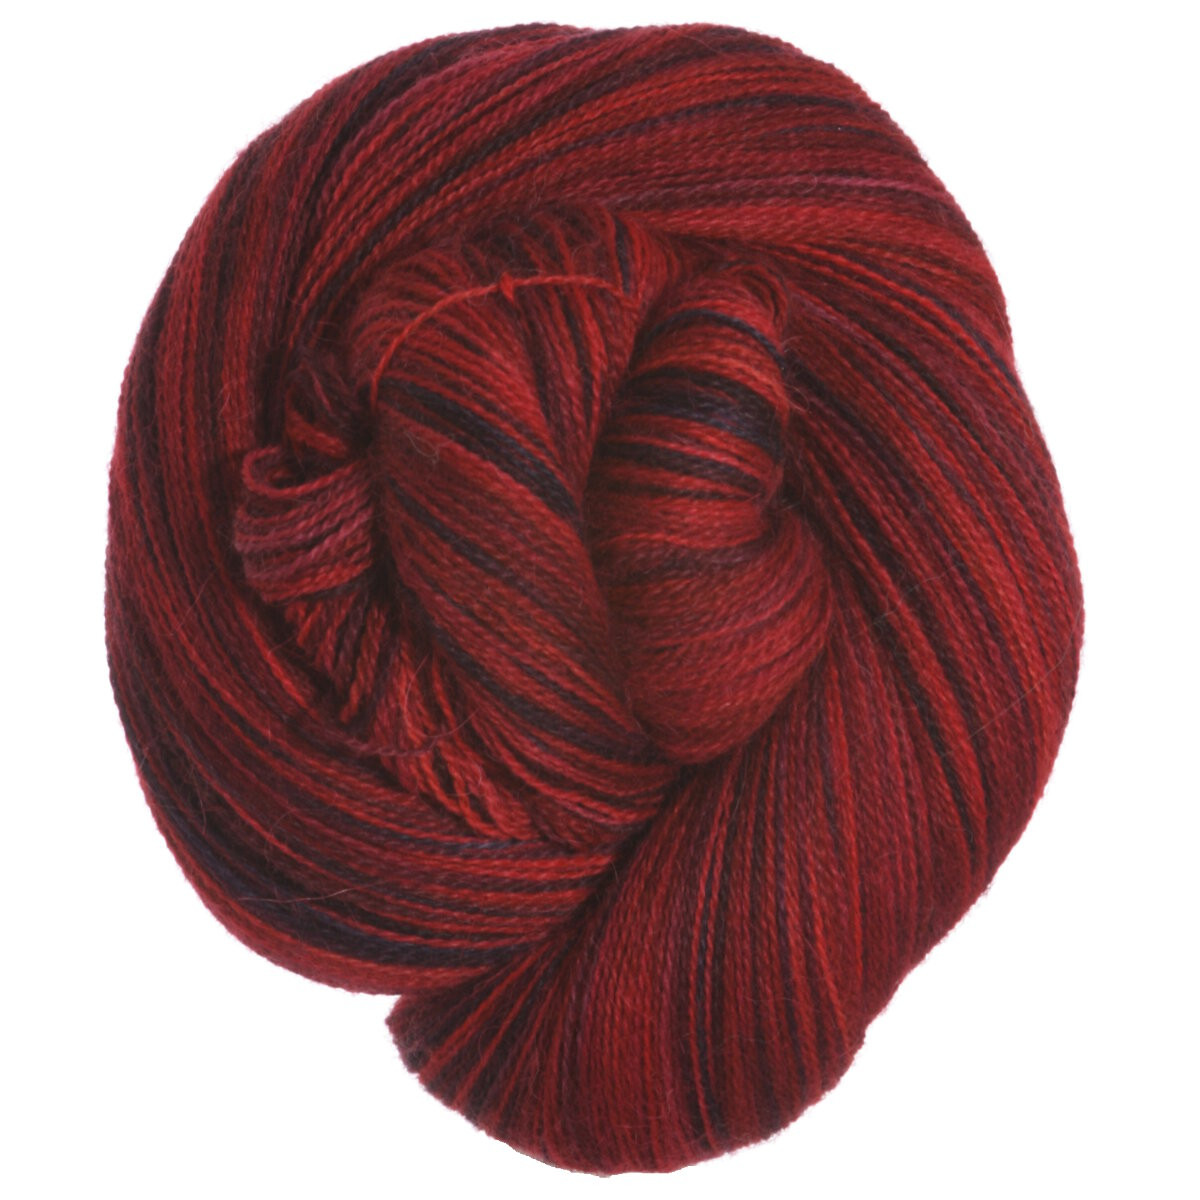 Lace Yarn Inspirational Misti Alpaca Hand Paint Lace Yarn Lp45 Discontinued Of Amazing 44 Pictures Lace Yarn